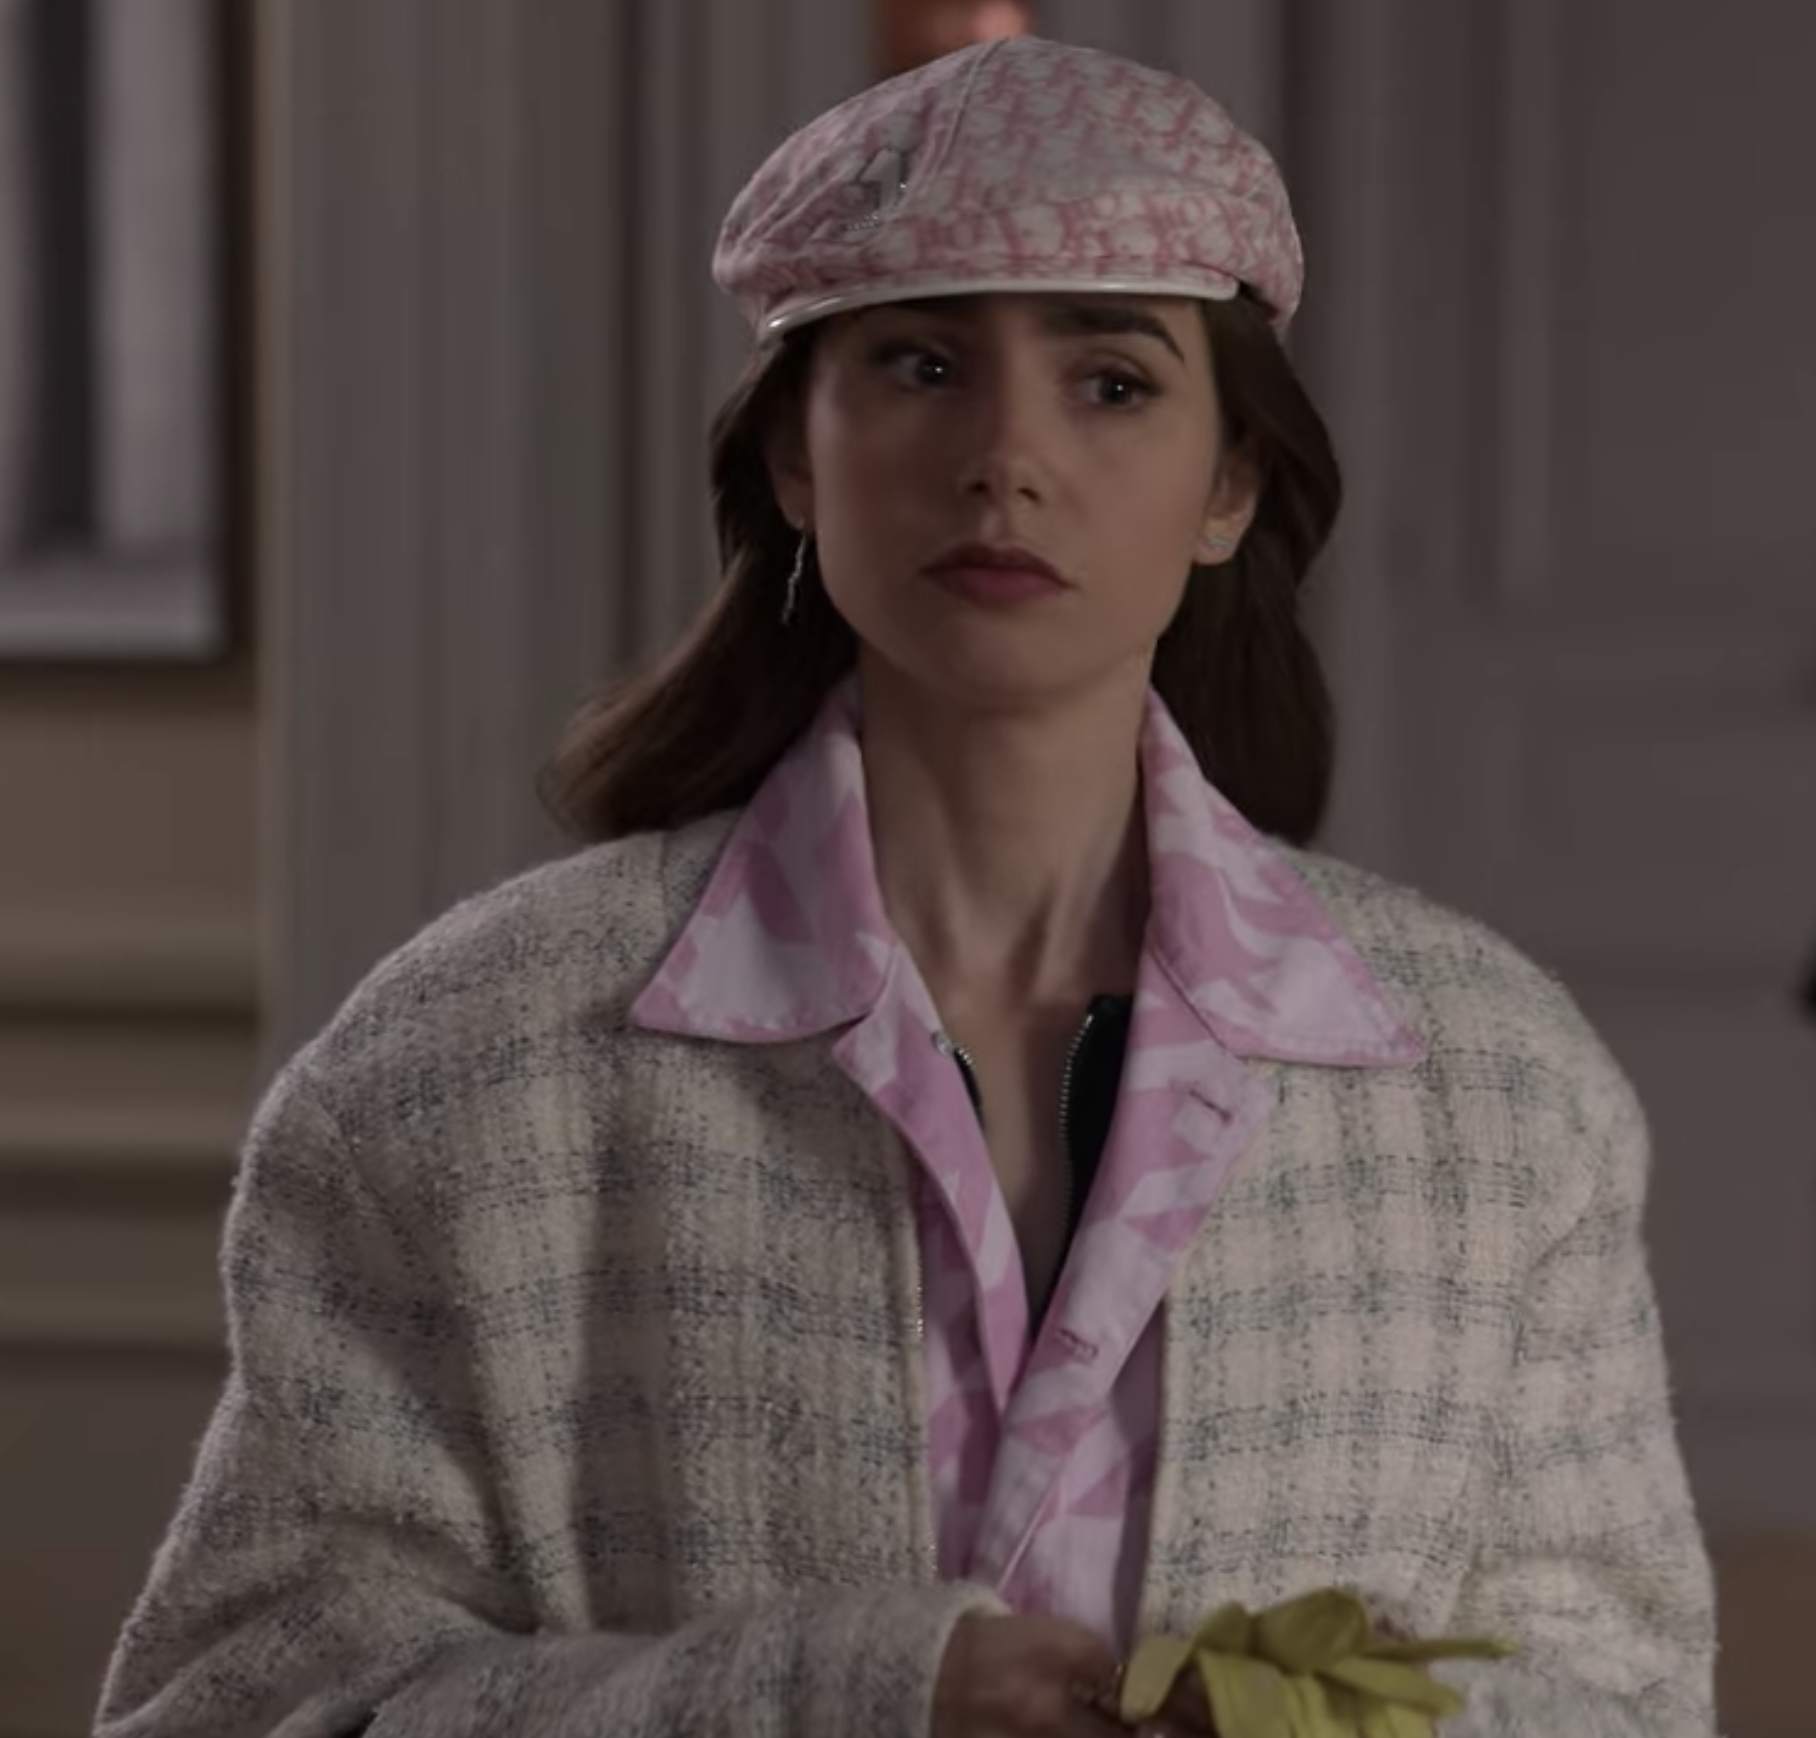 Emily wears a pink and white golf hat, a pink camo button up with the collar poking out over a pale pink plaid-like patterned coat